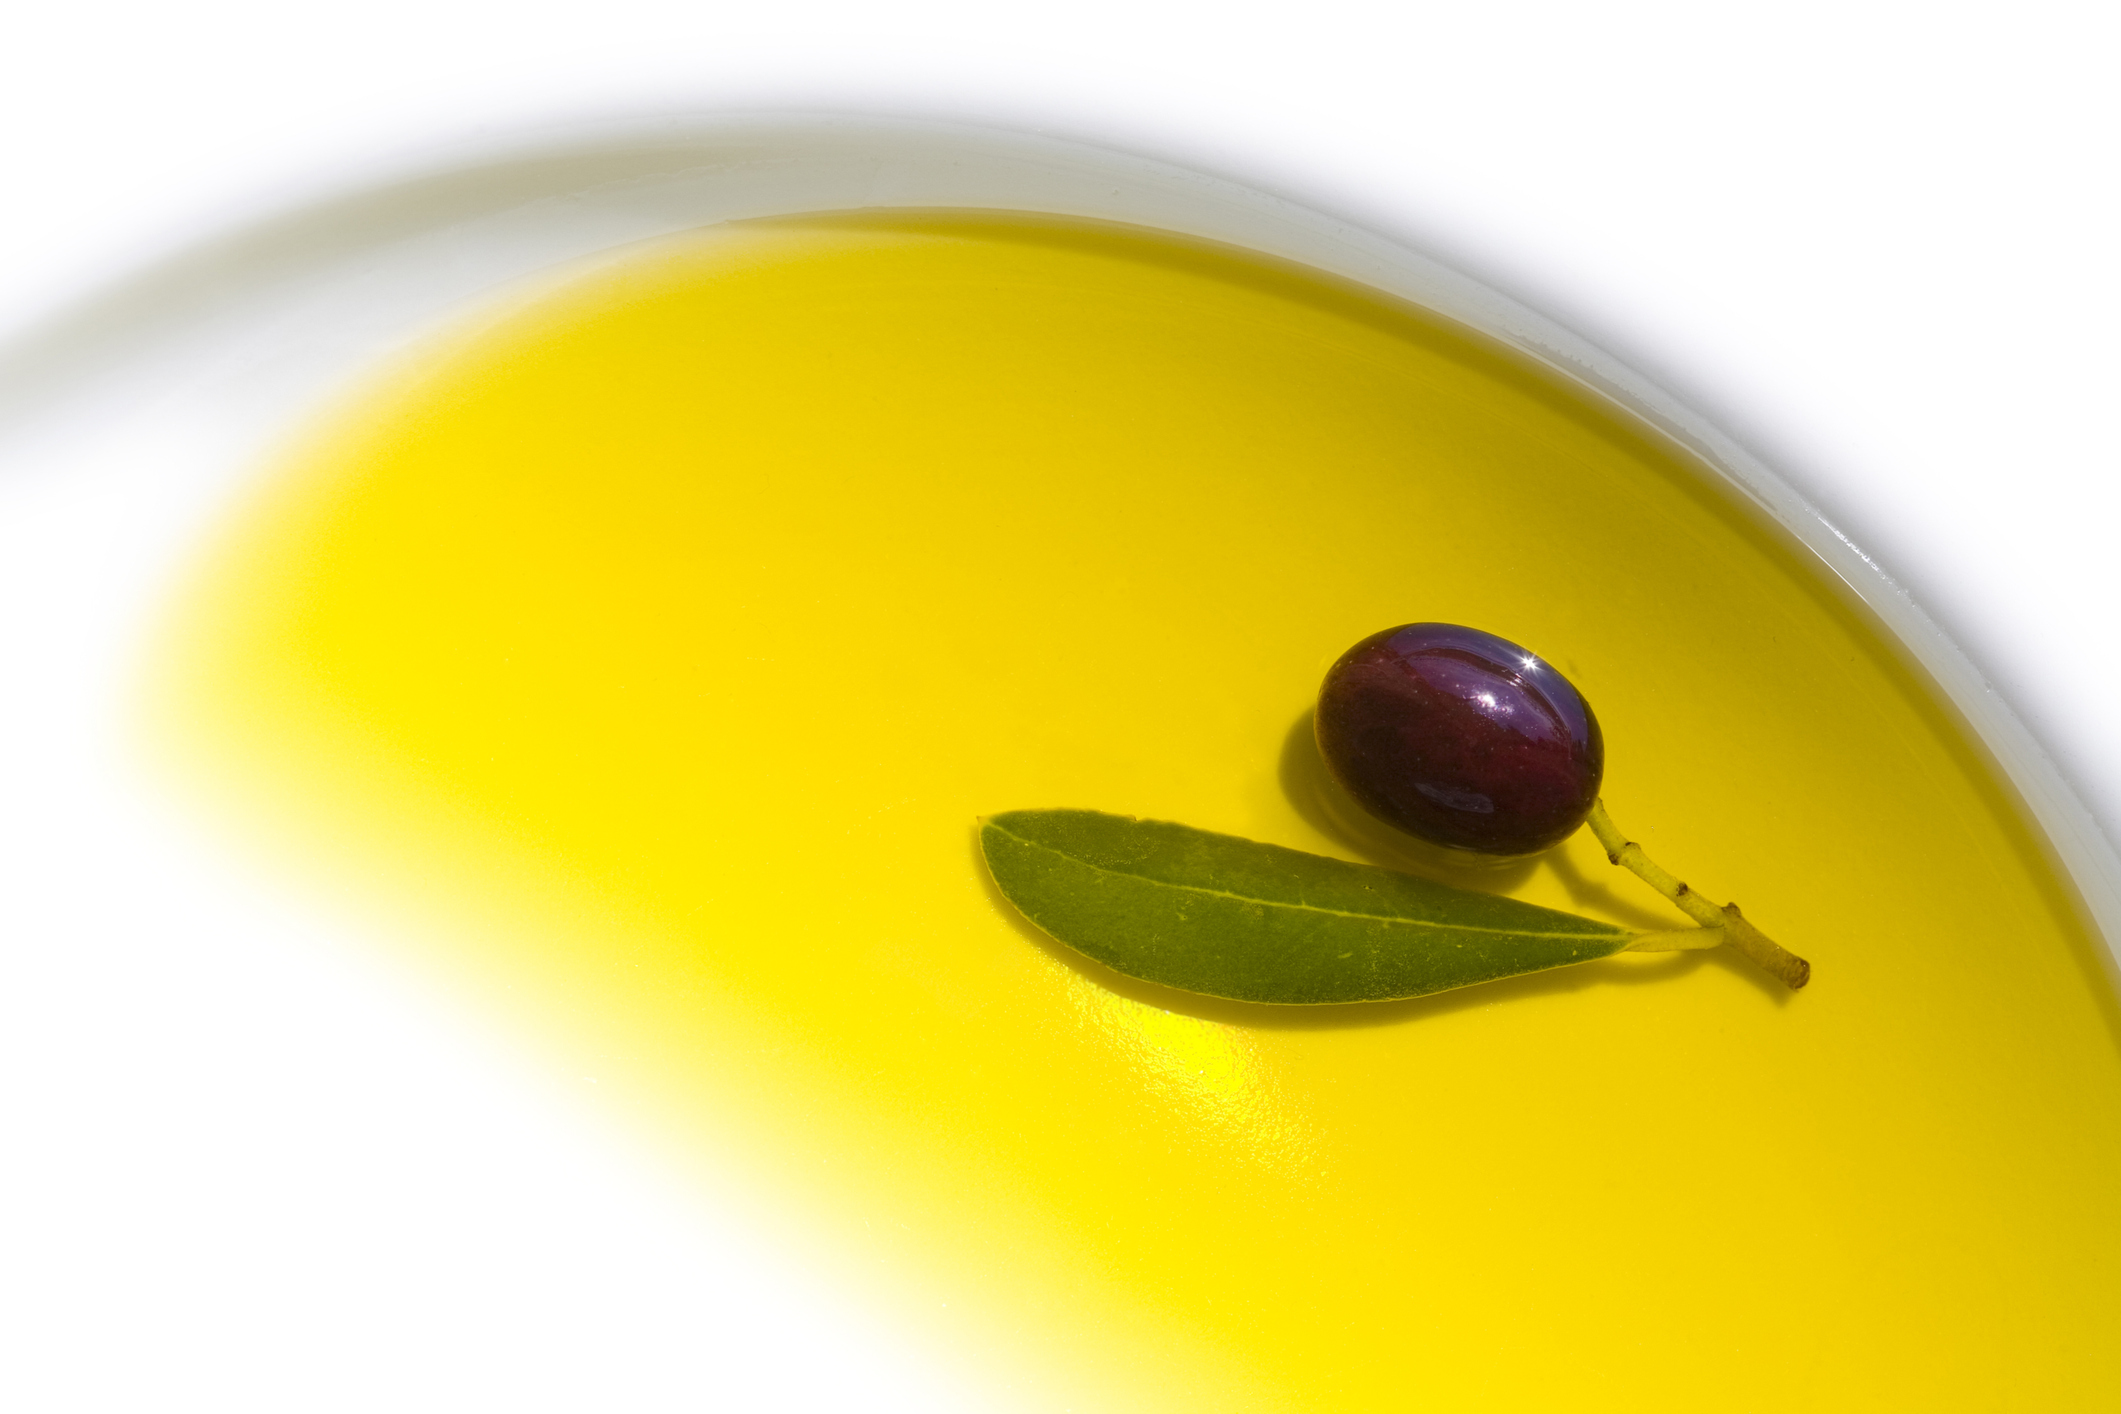 Why Extra Virgin? - In the 1850's 'Extra virgin olive oil' (EVOO) could only be found in chemists and was solely used for medicinal purposes.Today we understand the importance, and contributing health benefits that associate cooking with EVOO.EVOO is considered to be the highest grade of olive oil, produced from the pressing of good quality olives.